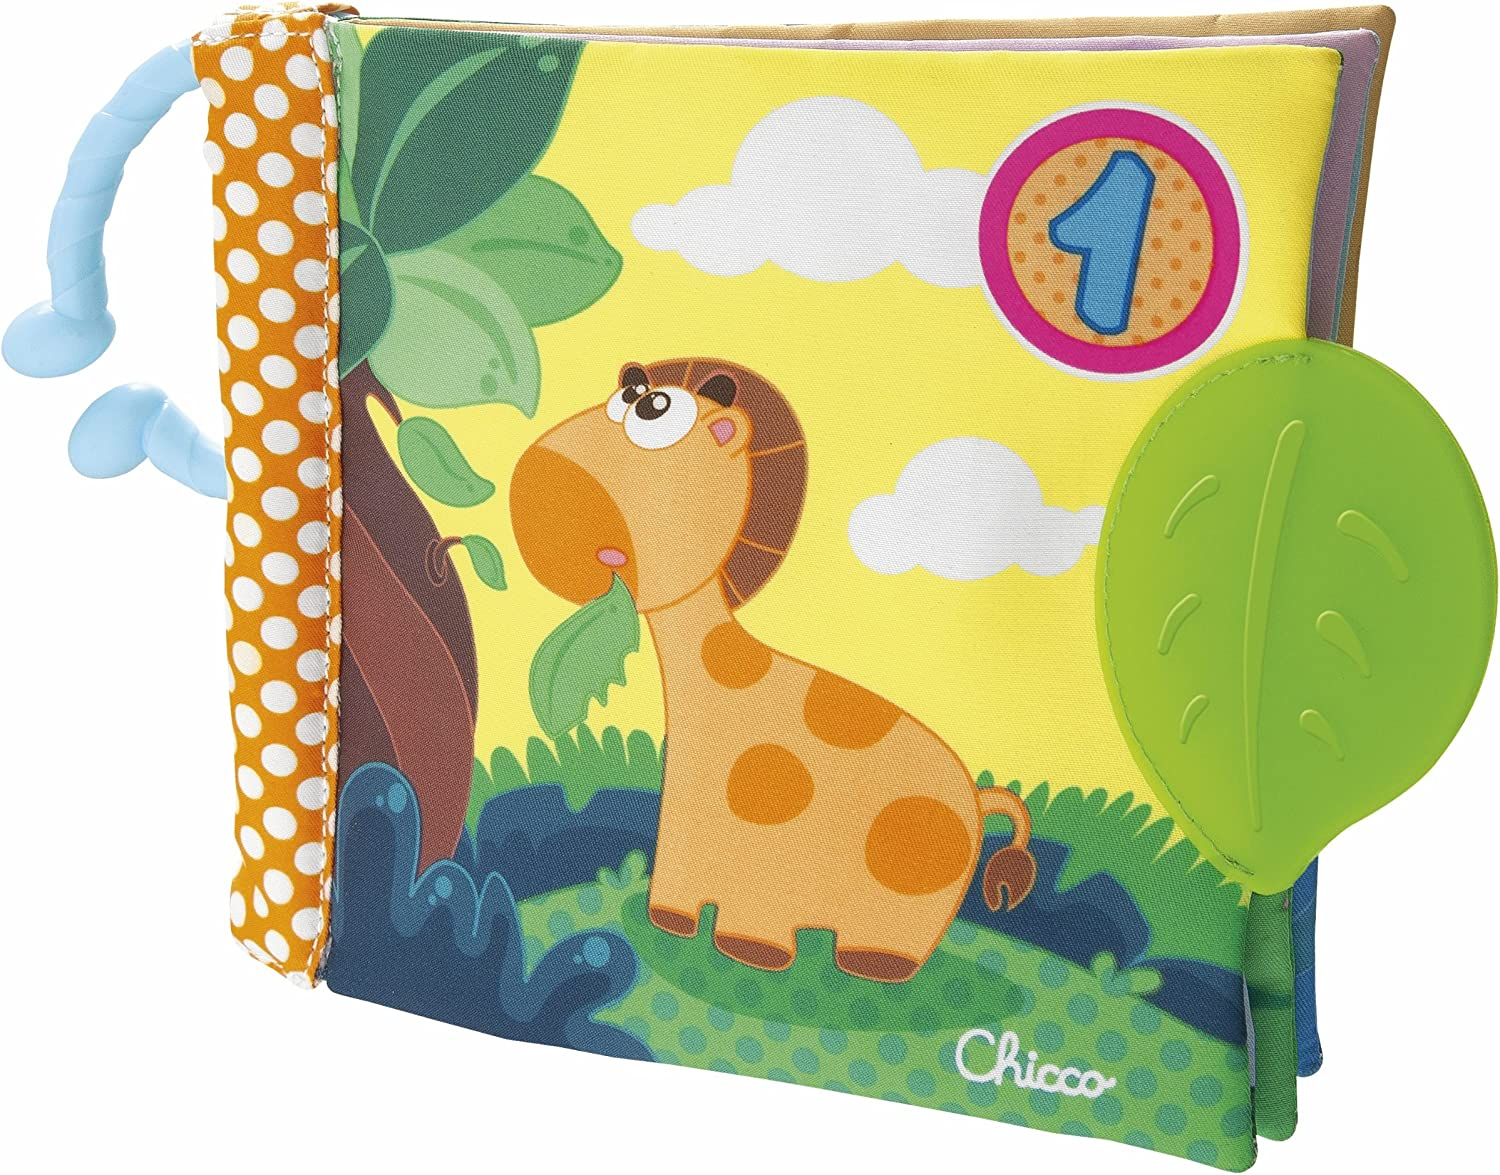 Chicco-00072376000000 Big & Small Juego Libro 1-2-3, Multicolor (00072376000000)